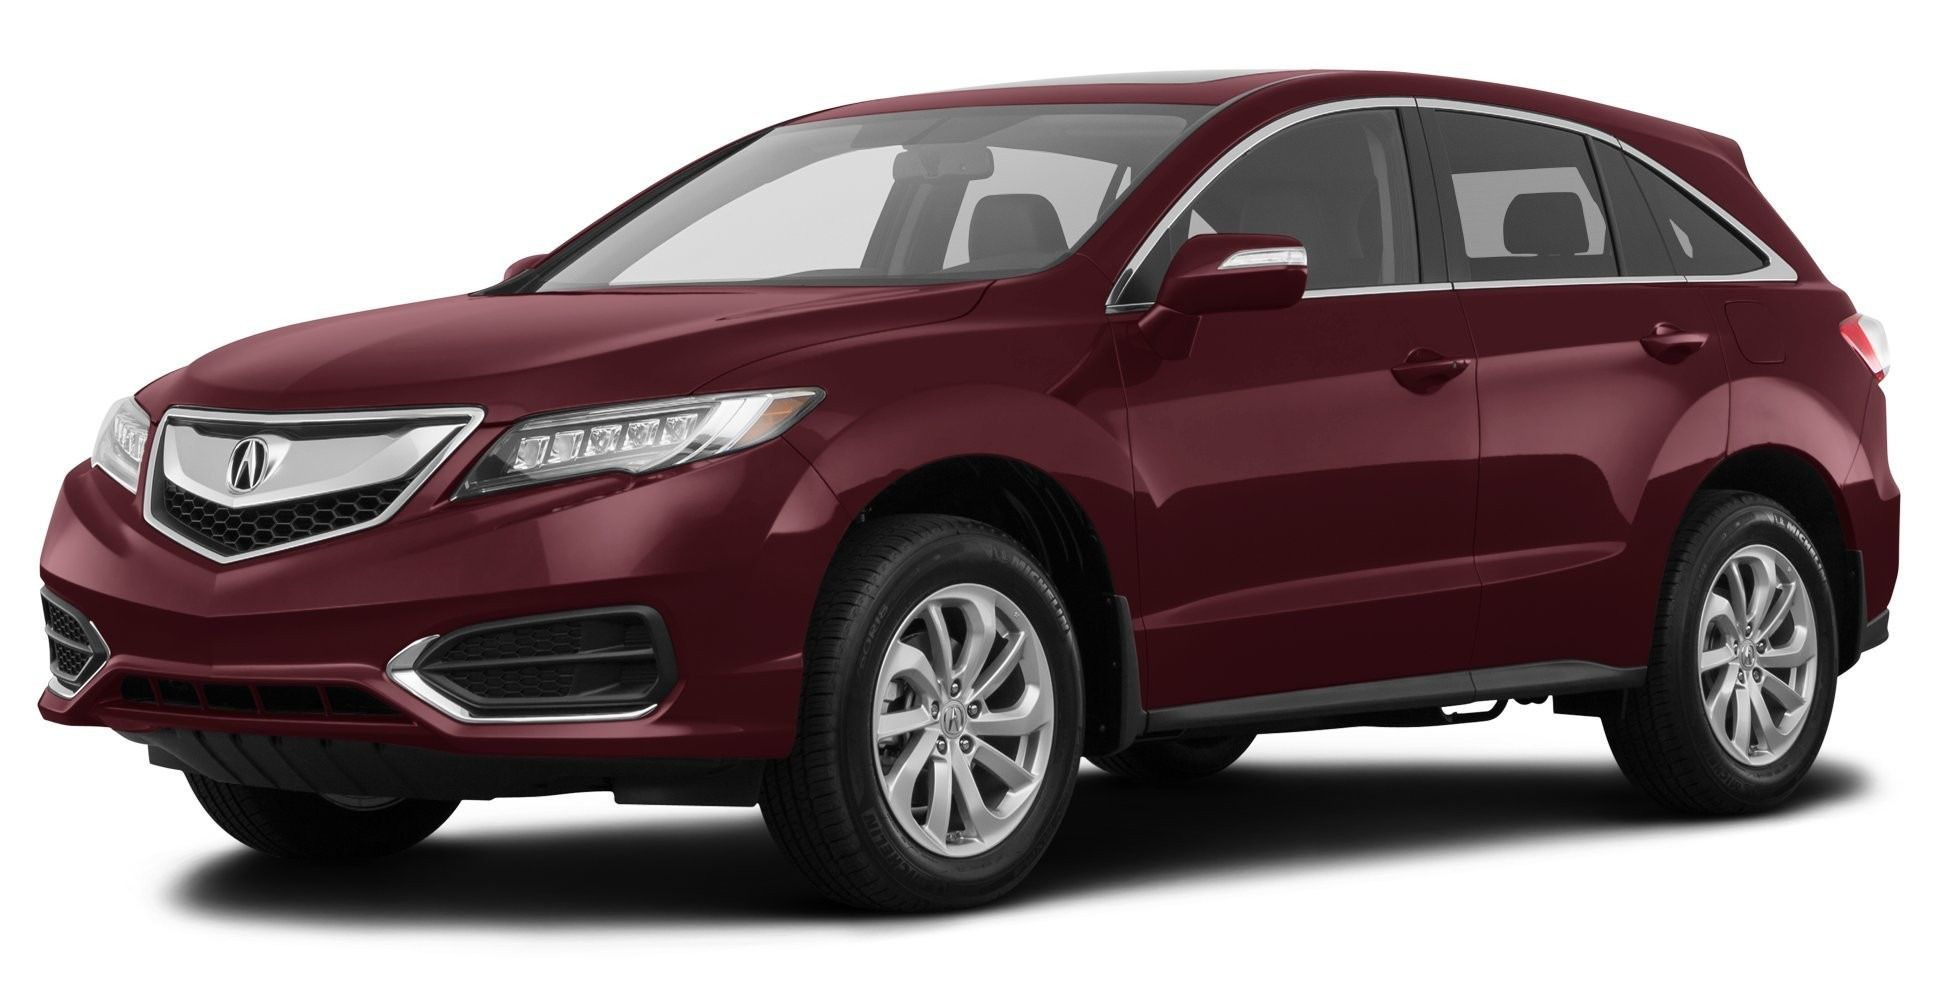 2019 Rdx Pricing Check More At Http Www New Cars Club 2019 01 16